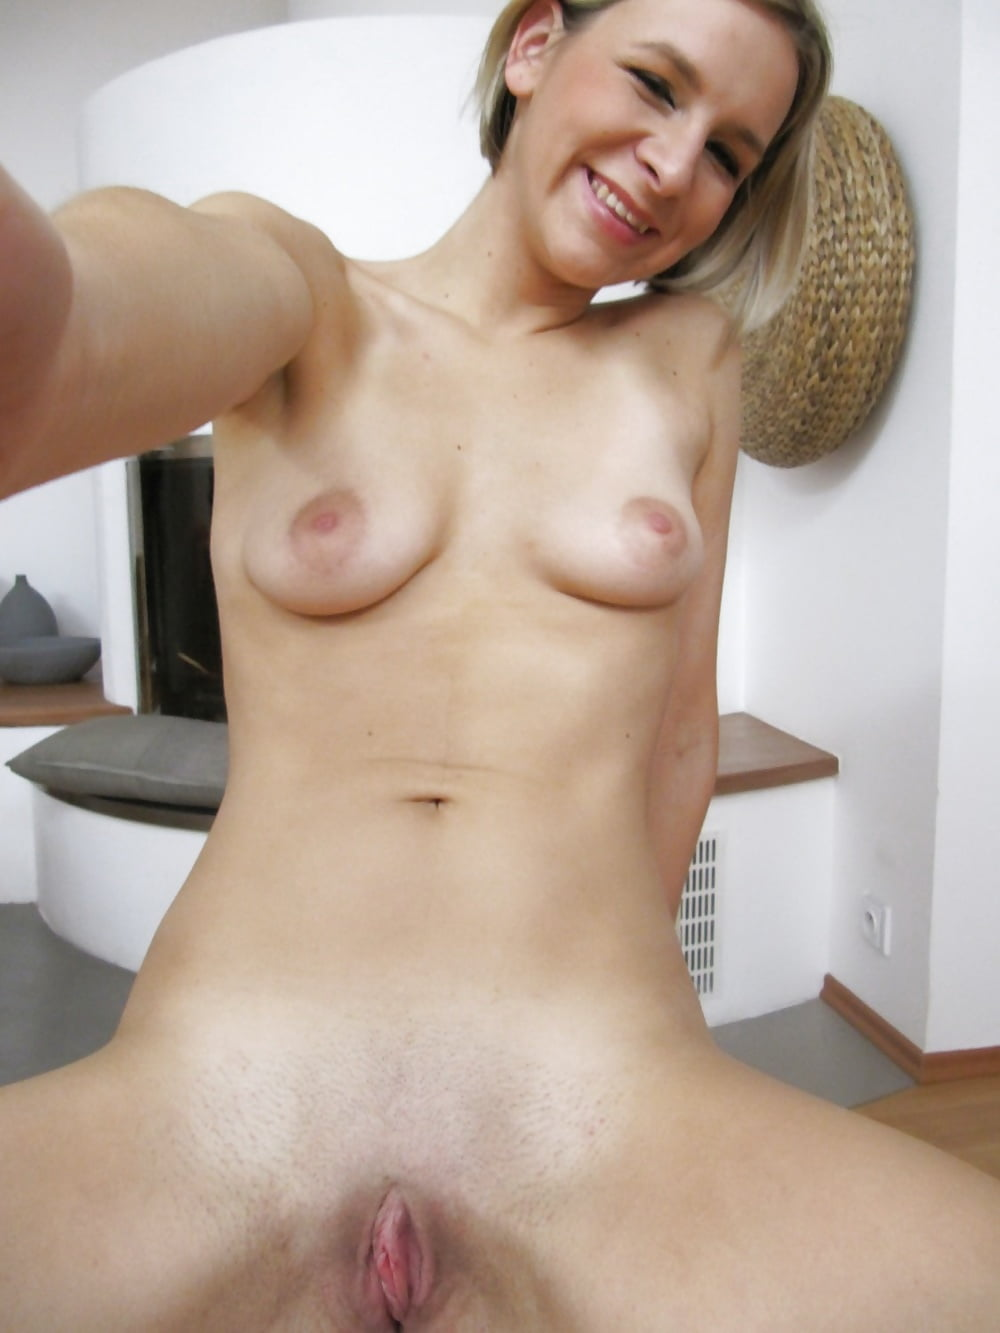 amature-shoot-myself-auditions-nude-naked